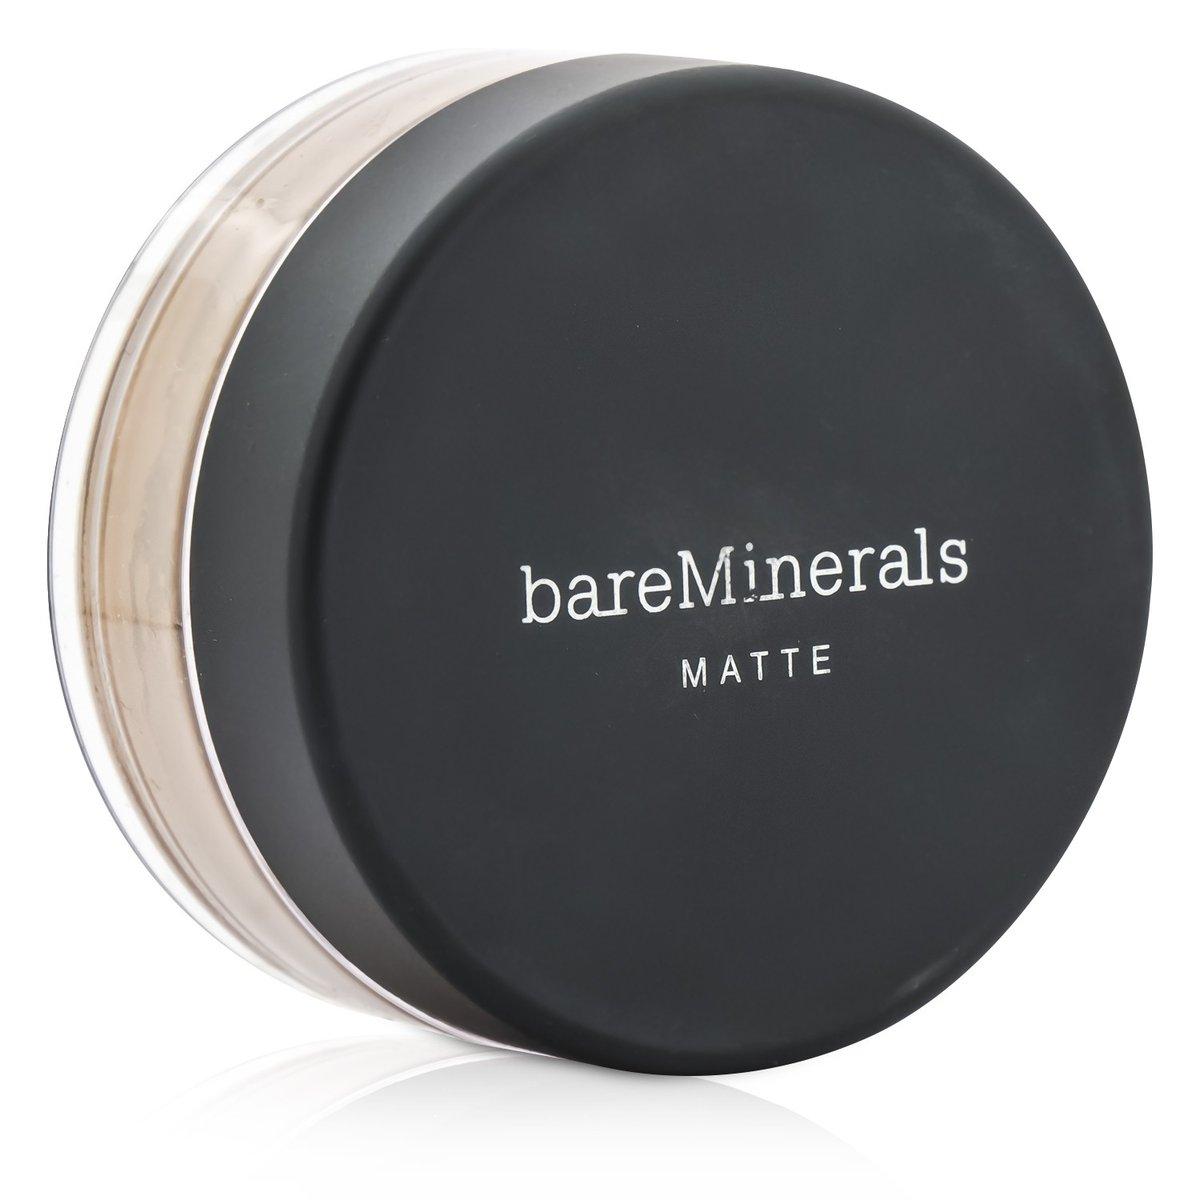 BareMinerals Matte Foundation Broad Spectrum SPF15 - Tan  -[Parallel Import Product]